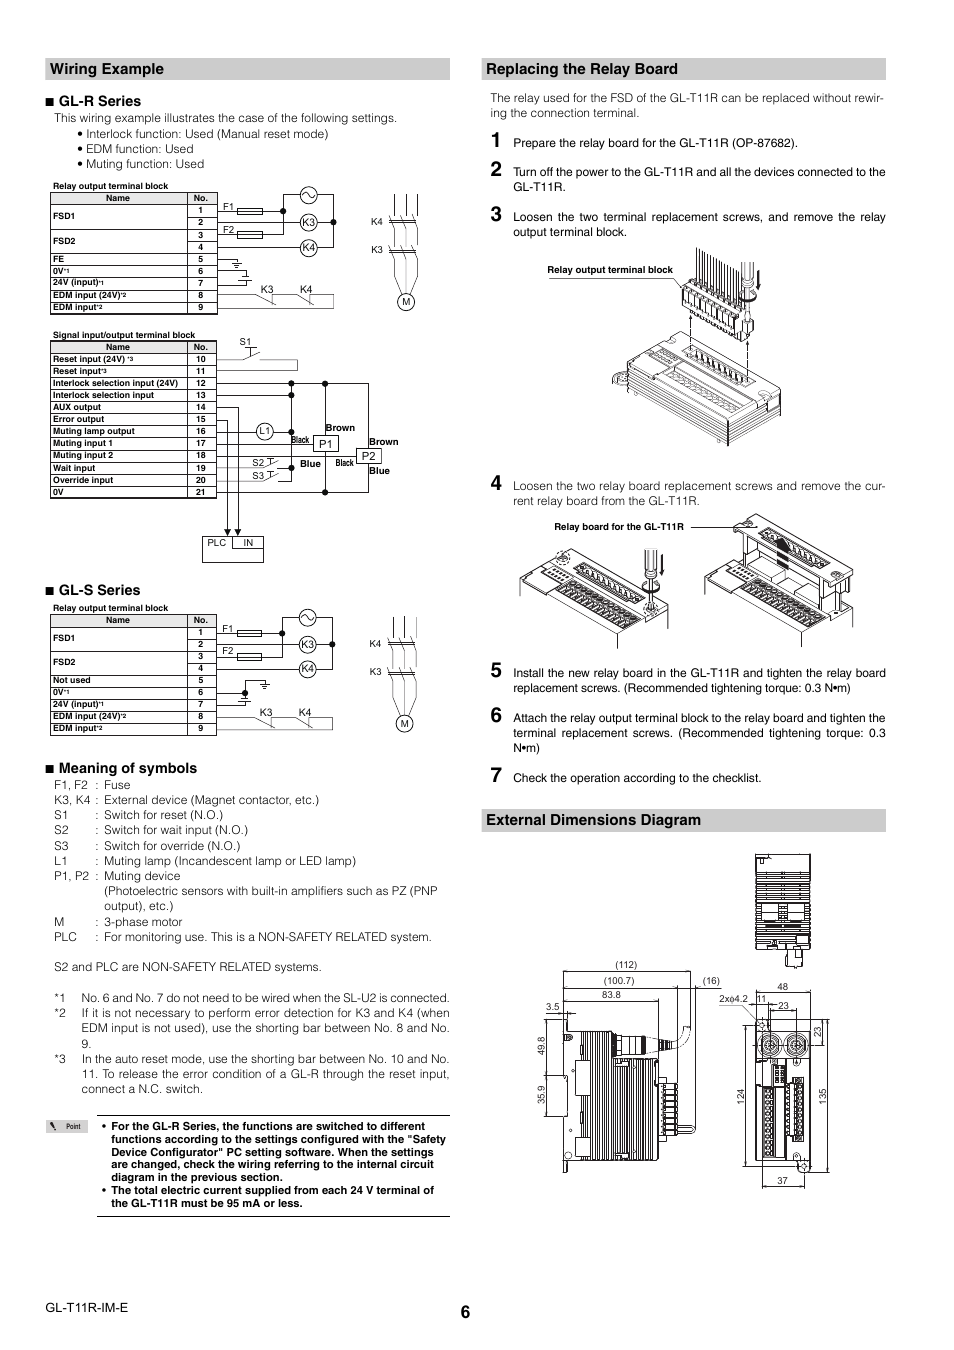 Wiring Example Replacing The Relay Board External Dimensions Terminal Diagram Keyence Gl T11r User Manual Page 6 8